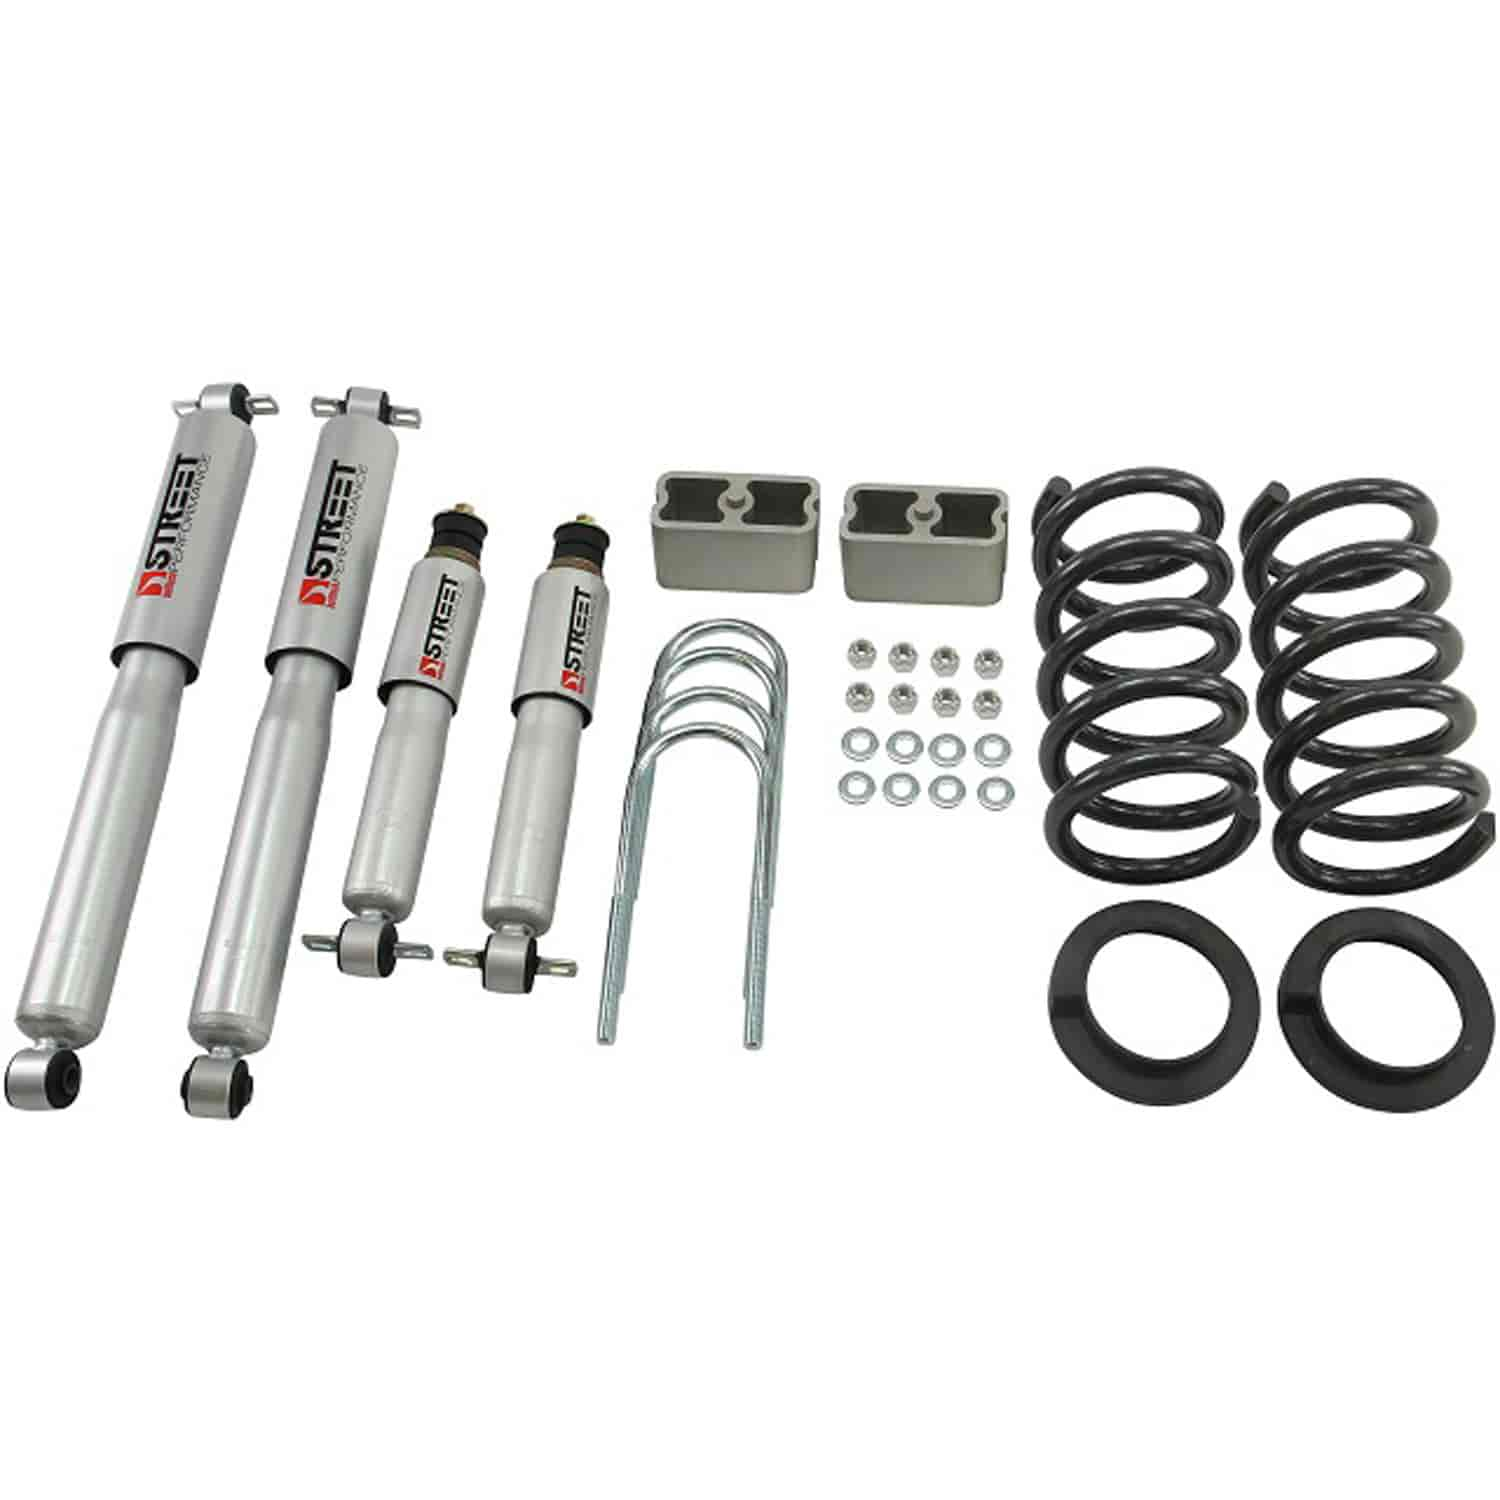 Belltech 627sp Complete Lowering Kit Chevy Blazer Gmc Jimmy 6cyl